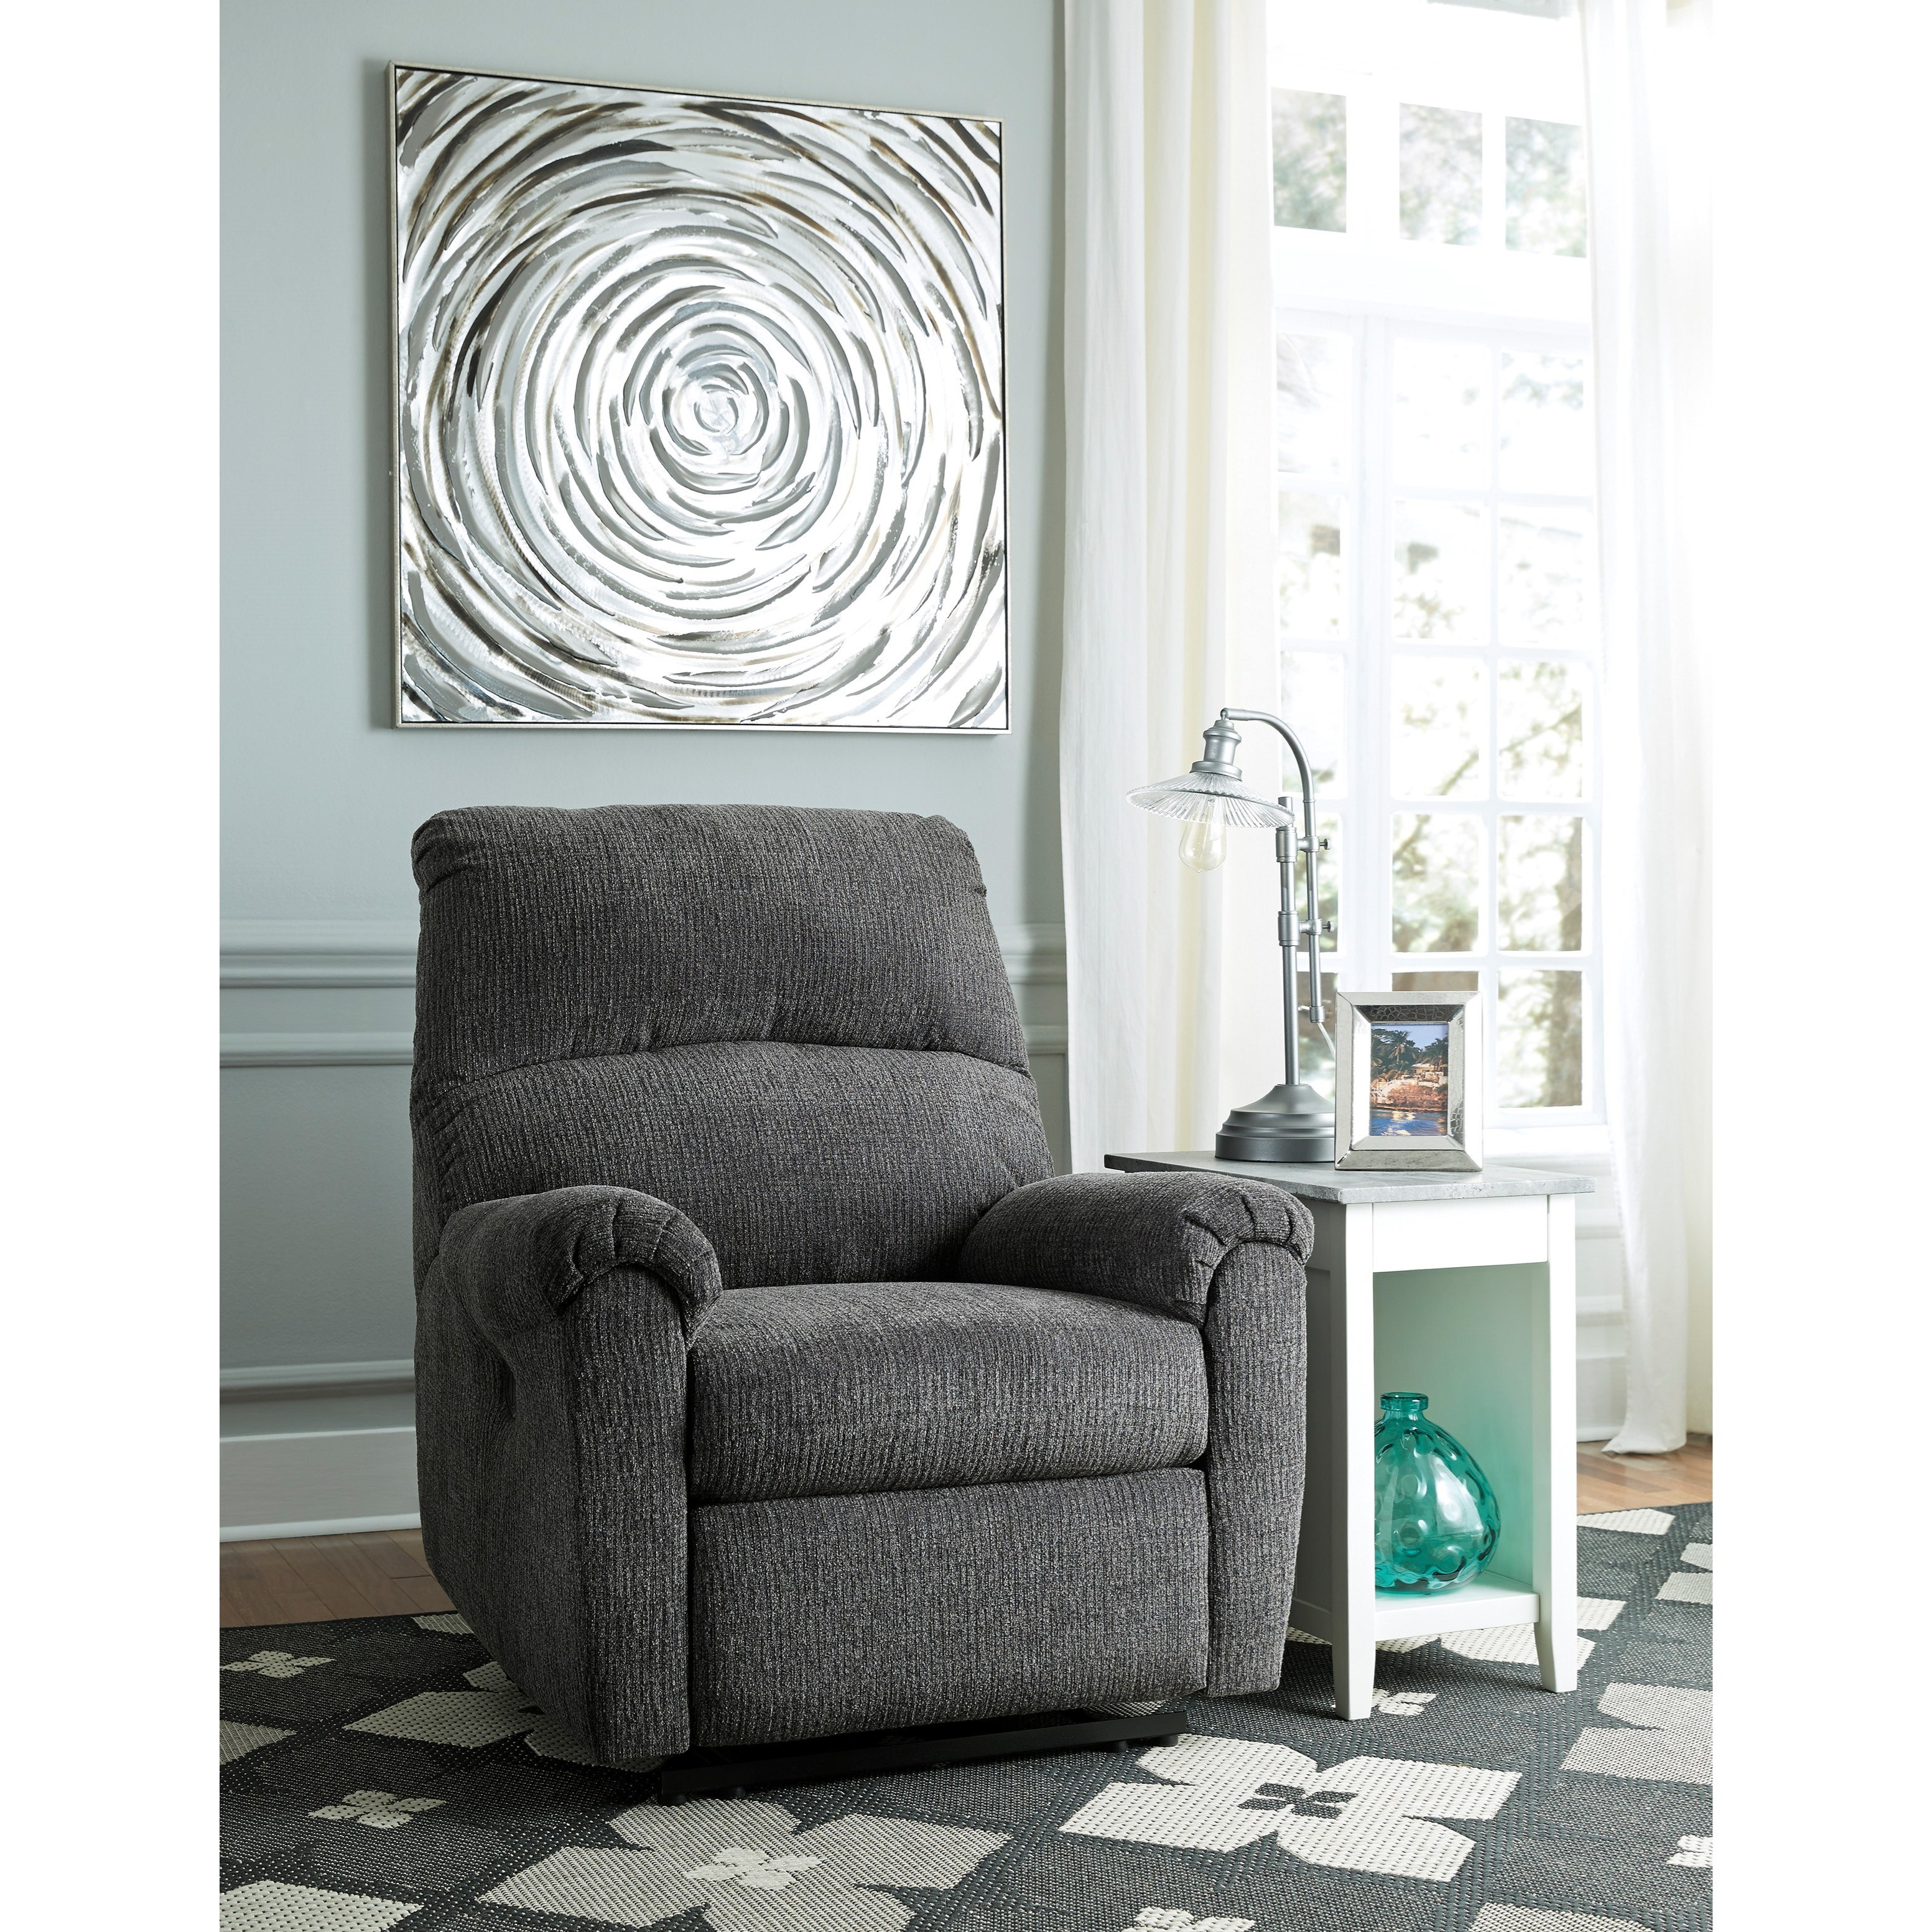 Prices Of Ashley Furniture: Signature Design By Ashley McTeer Casual Power Recliner